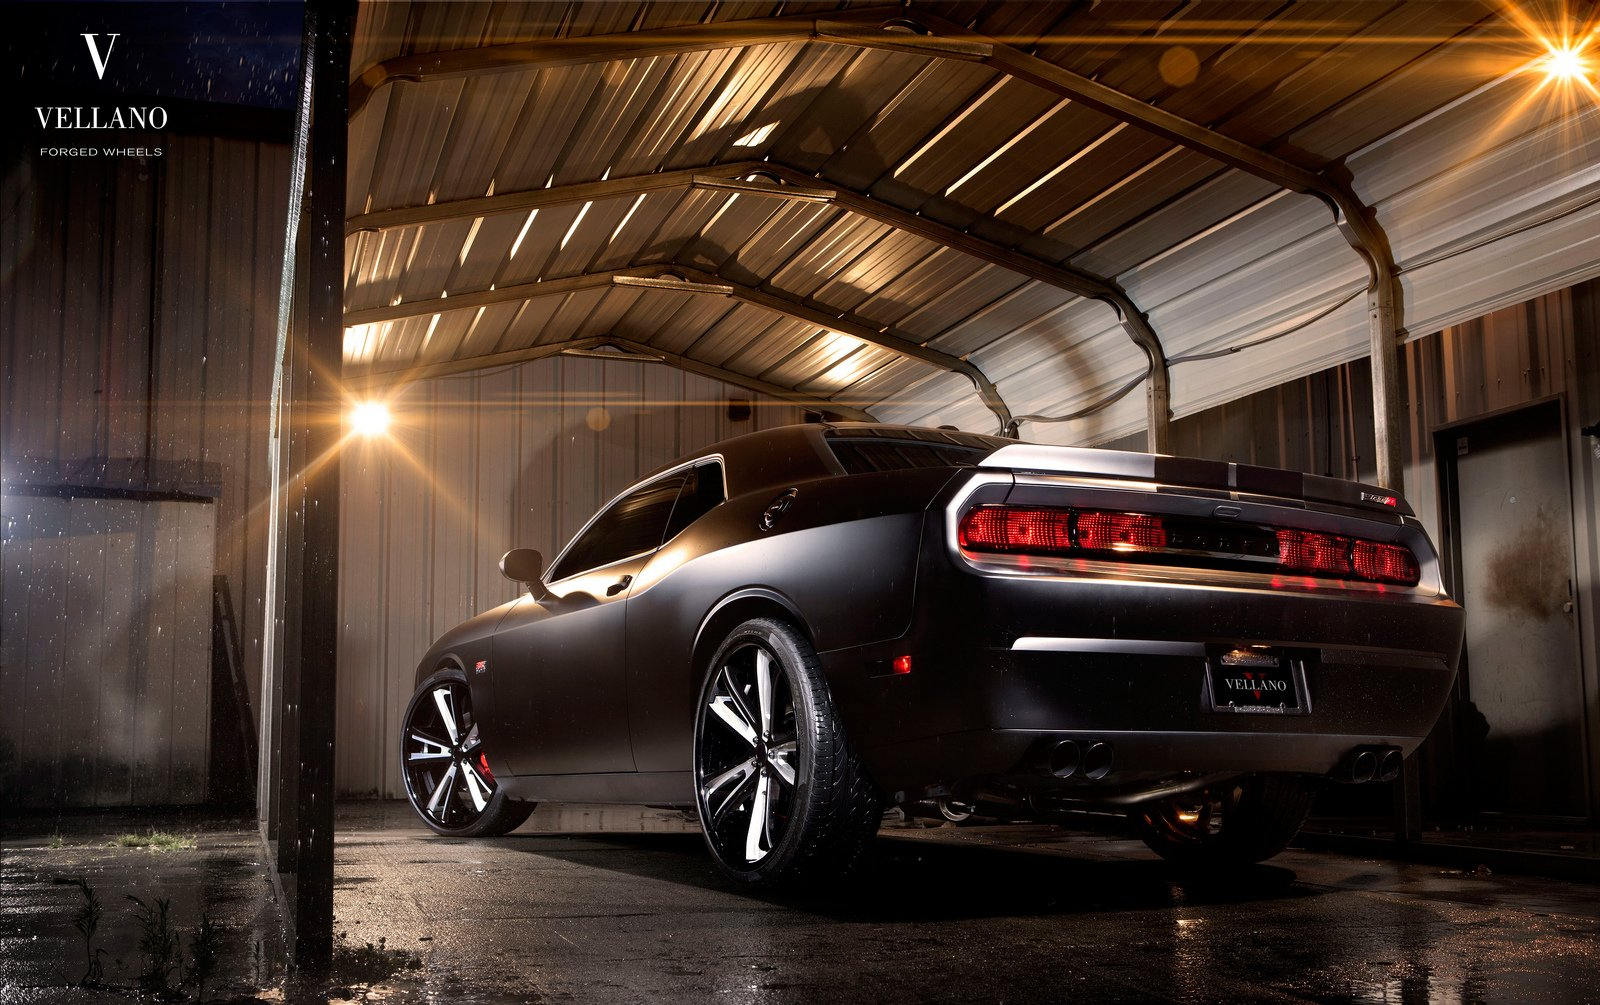 Previous wallpaper cars challenger dodge supercharger black tuning vellano wheels